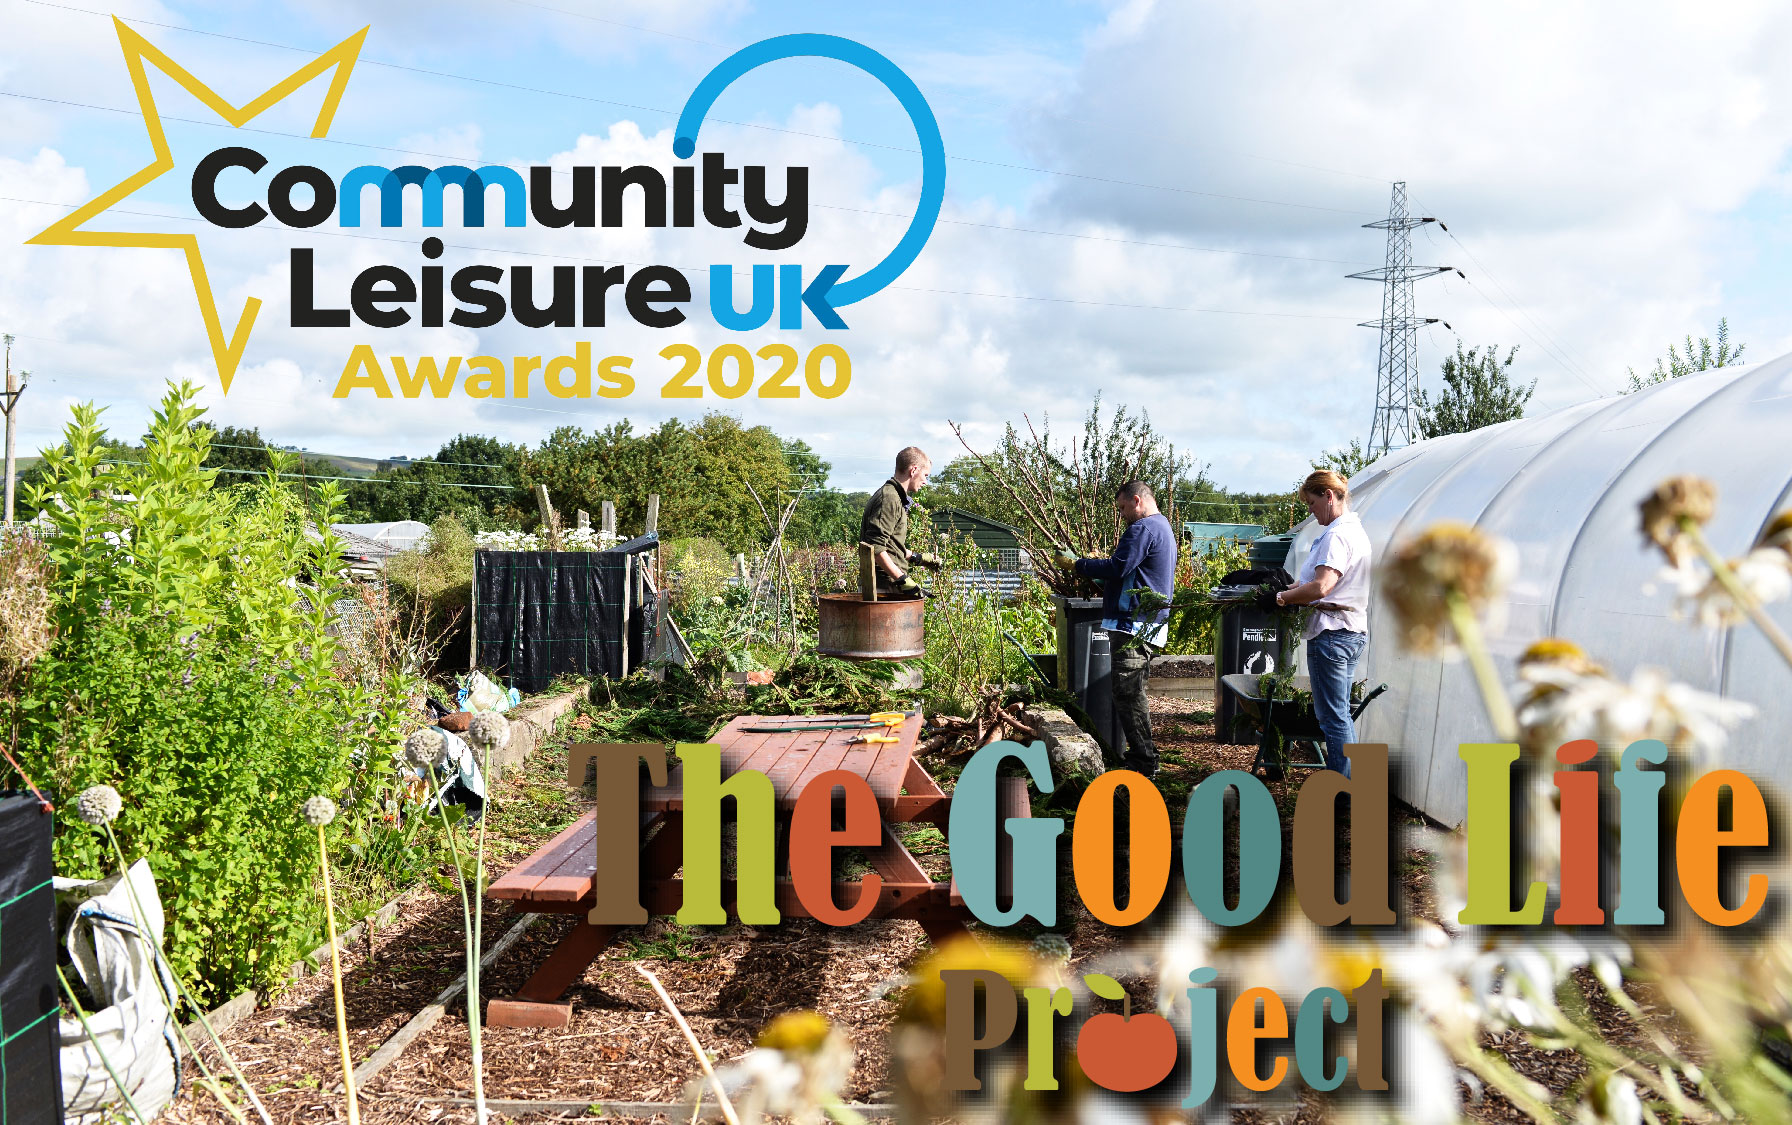 The Good Life Project is up for Community Leisure UK Awards 2020